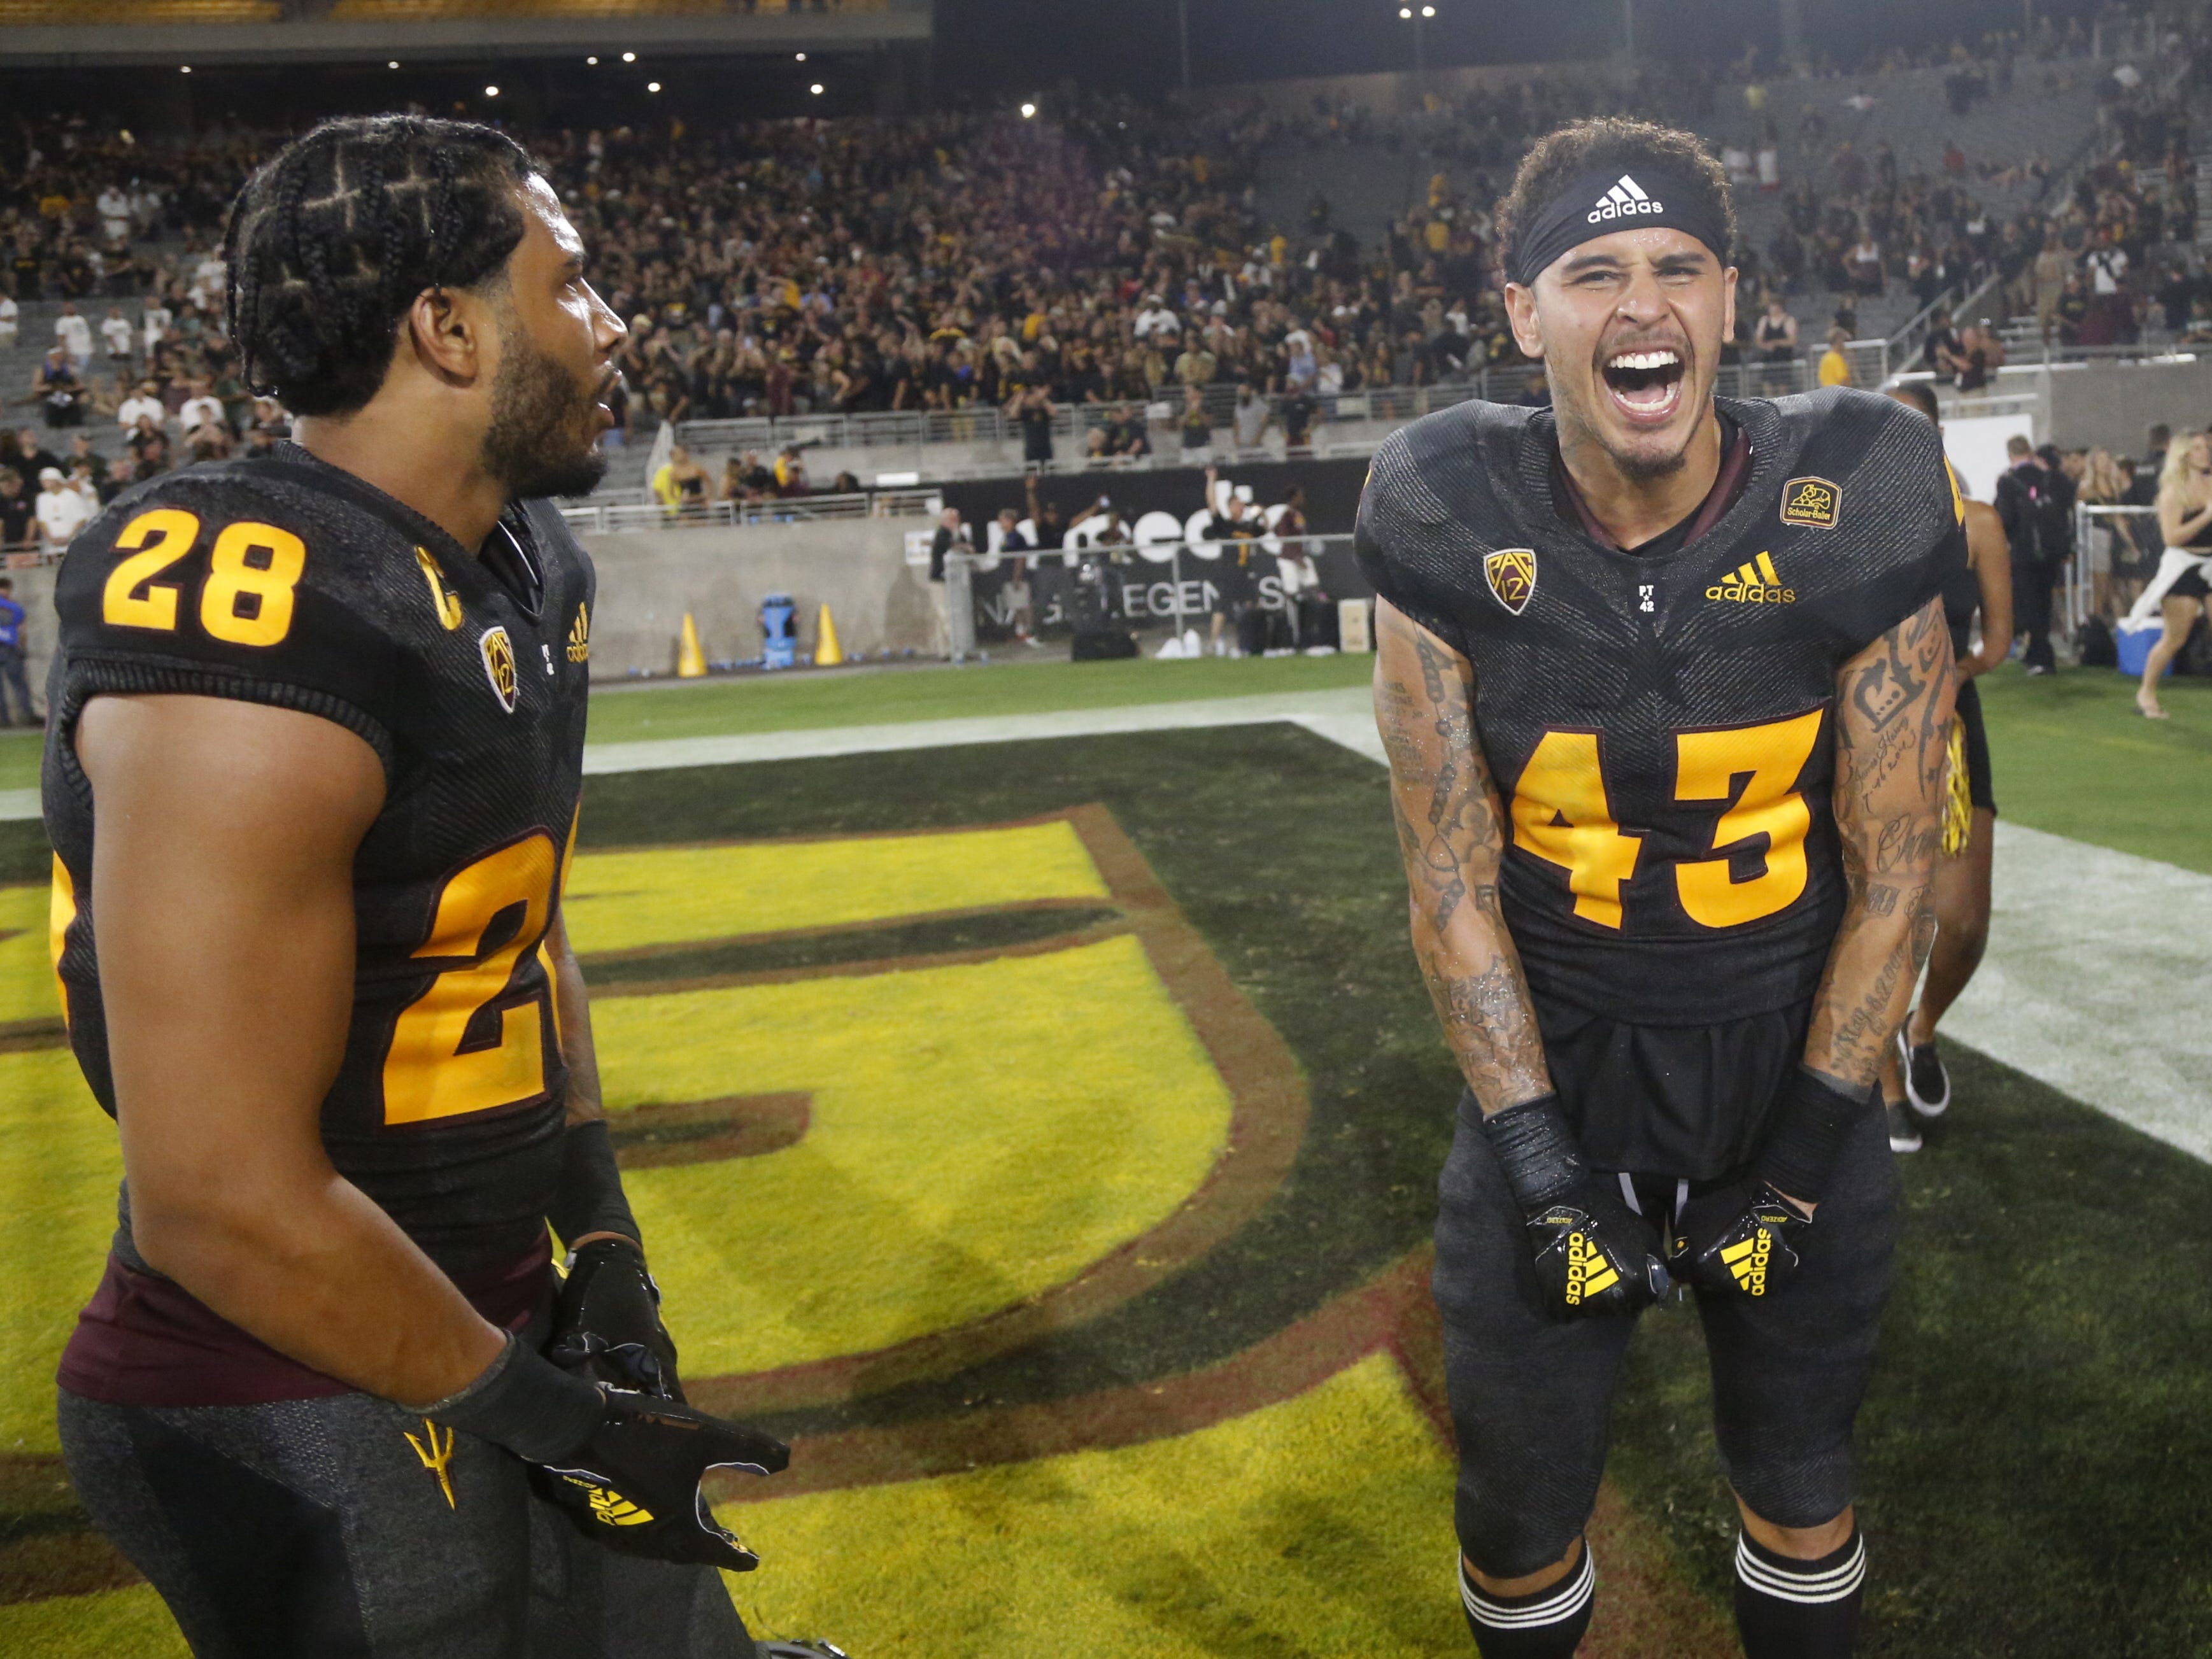 Arizona State Sun Devils defensive back Demonte King (28) and Arizona State Sun Devils safety Jalen Harvey (43) celebrate after defeating Michigan State 16-13 at Sun Devil Stadium in Tempe, Ariz. on Sept. 8, 2018.